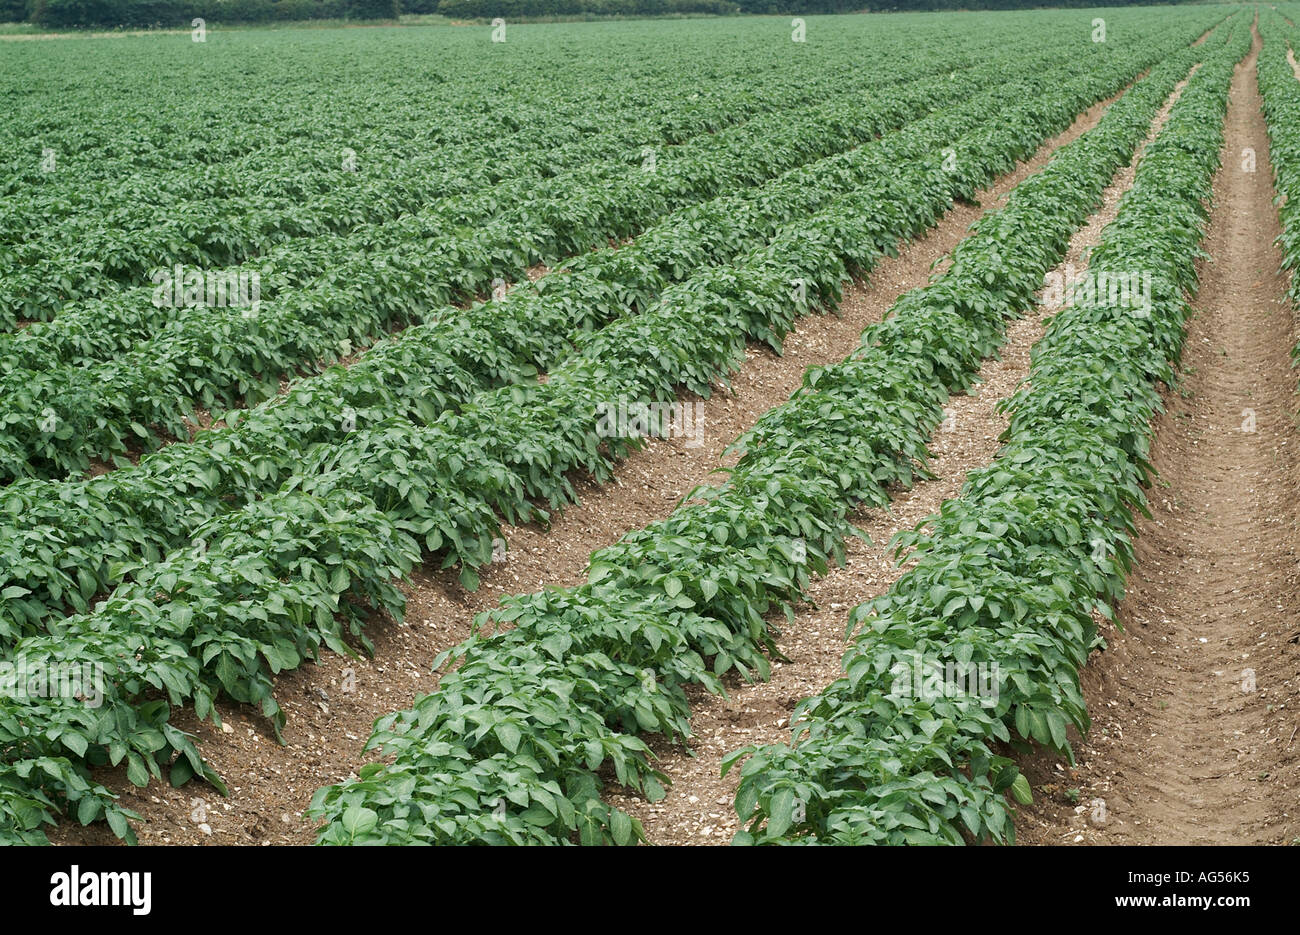 Stock Photo Young Potato Crop Field England Uk Solanum Tuberosum Potatoes Are The World S Most Widely Grown Tuber Crop